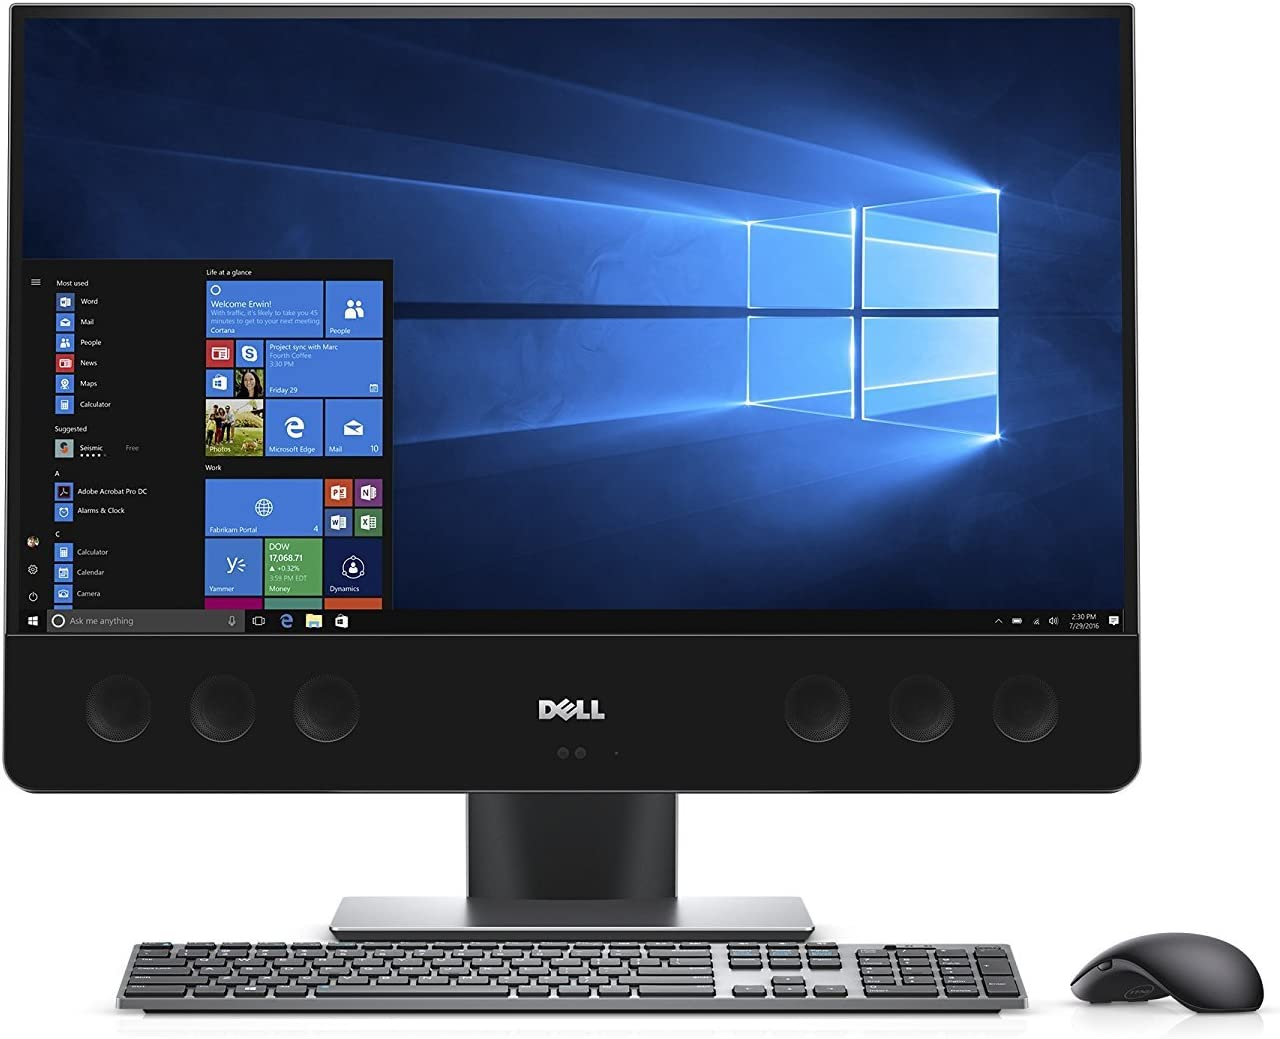 2018 Premium Flagship Dell XPS 27 All-in-One Desktop Computer (UltraSharp 4K UHD Touchscreen, Intel i7-7700 3.6GHz, 16GB RAM, 2TB HDD + 32GB SSD, AMD Radeon RX 570, 802.11ac, Webcam, Windows 10)